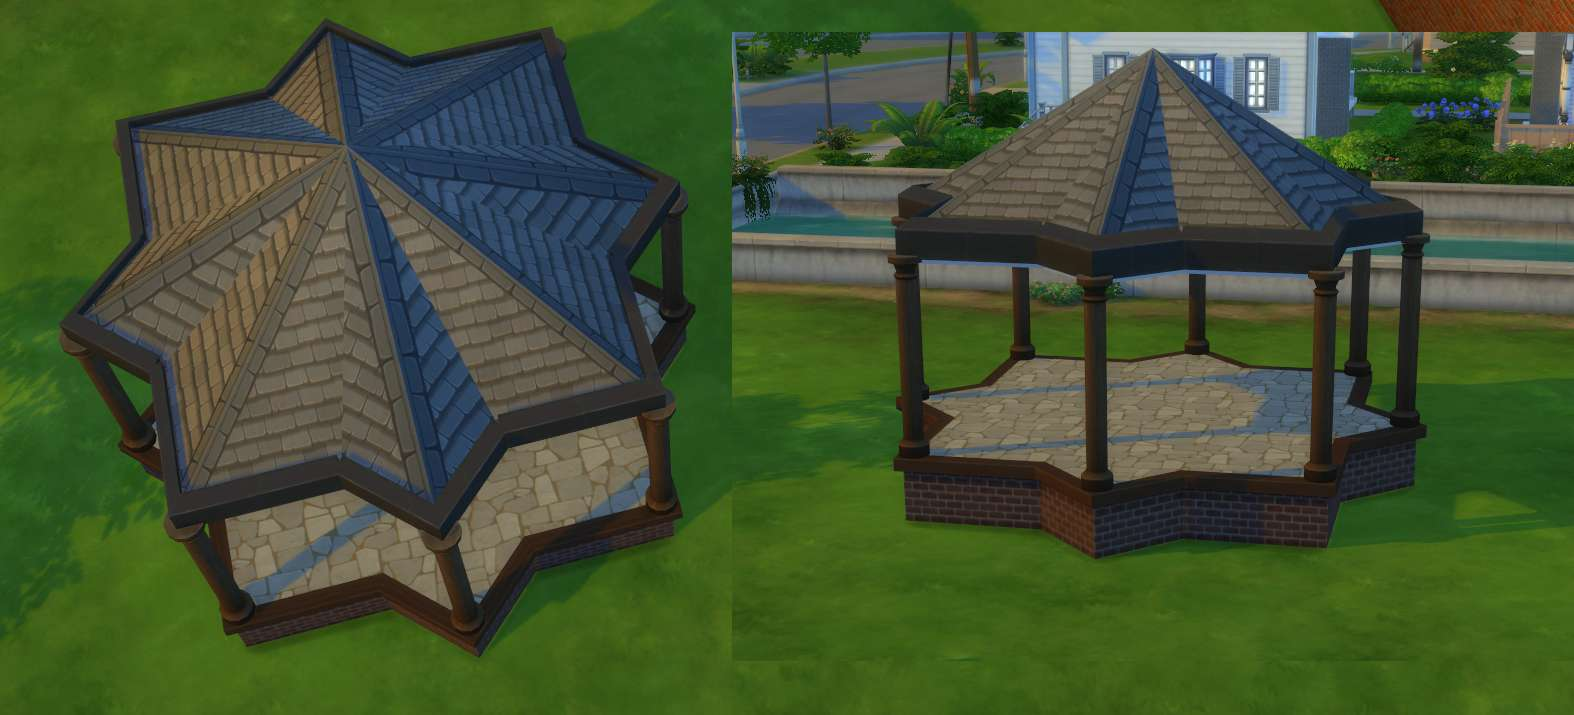 Sims 4 Building How To S Almost Round Roof